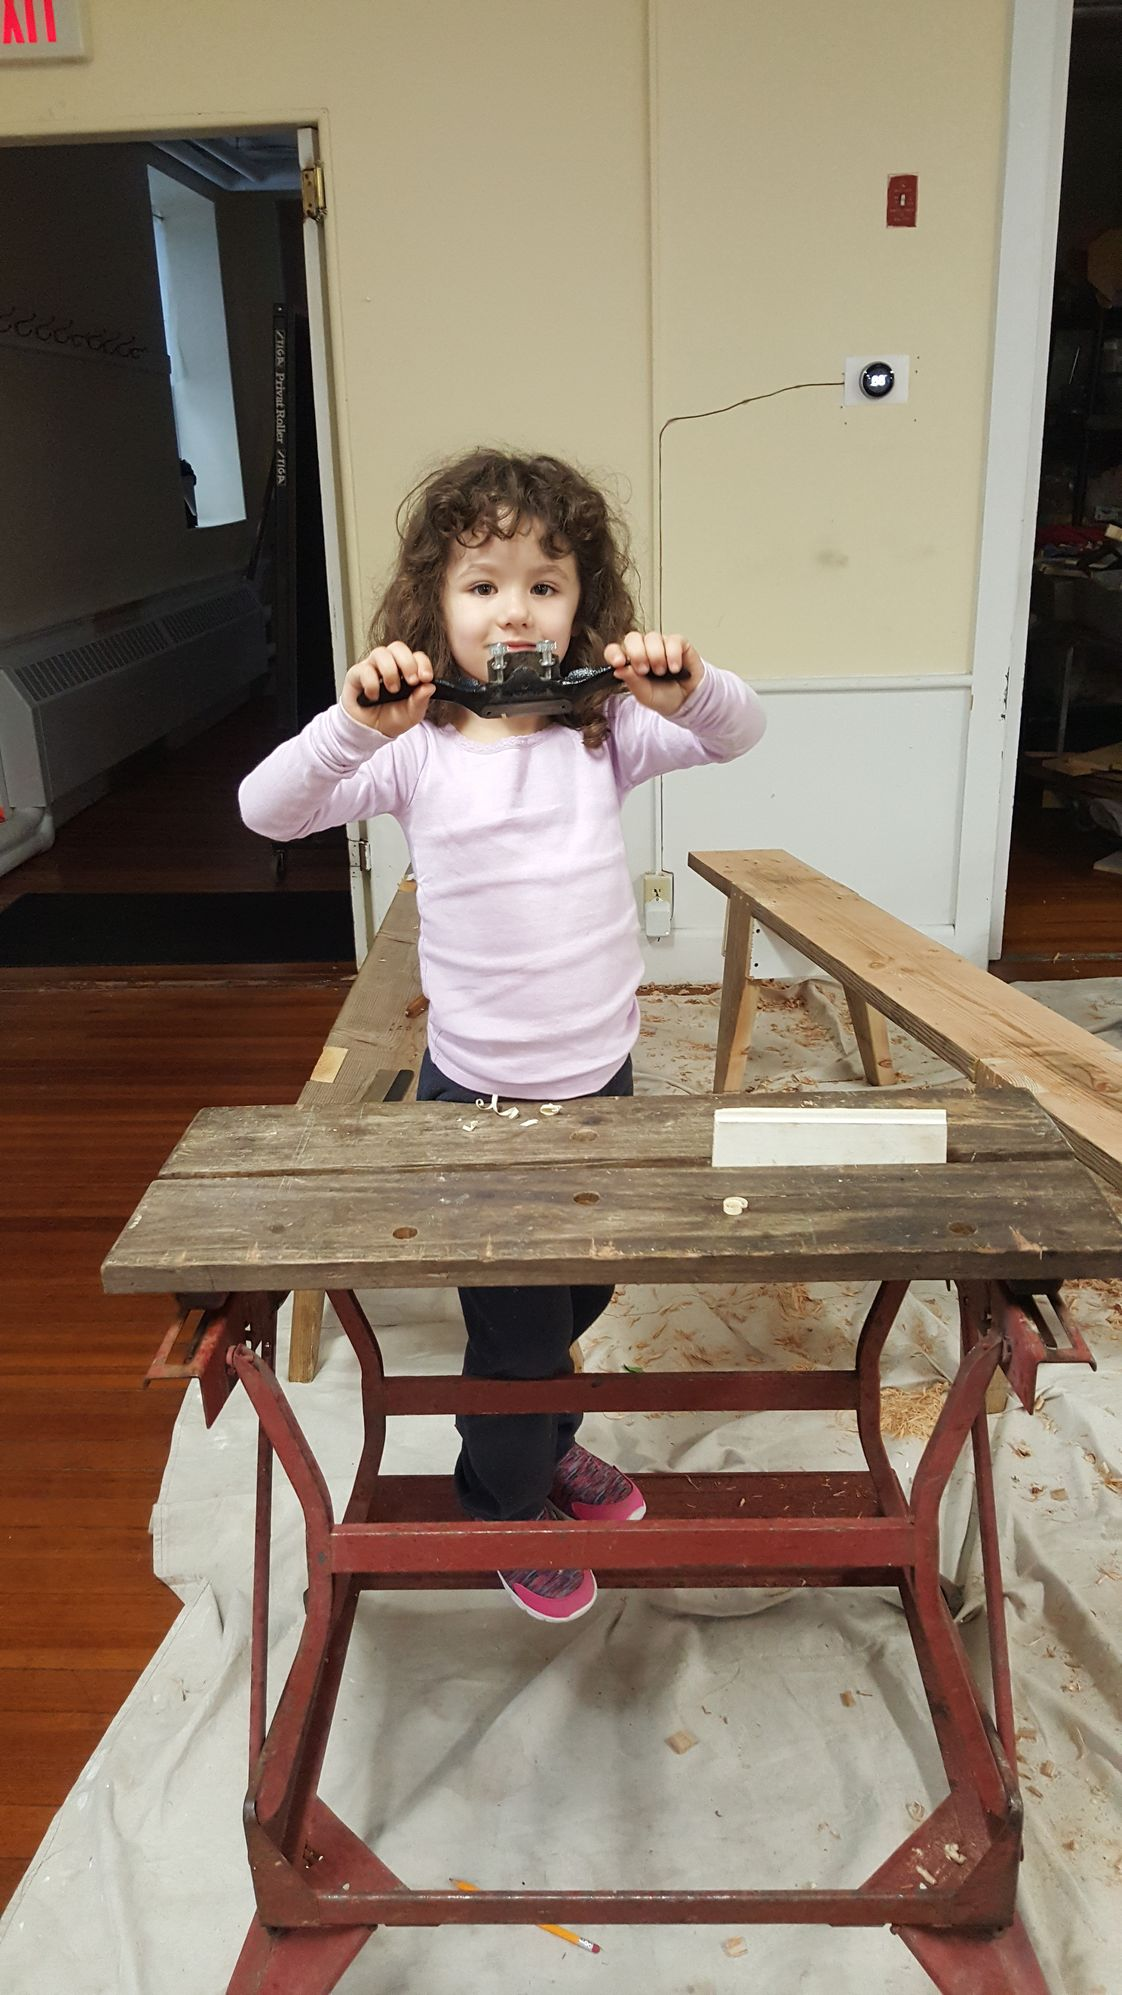 Longview School Photo - Our youngest student, 4 year old Maizie, is sanding their collaborative woodworking project.